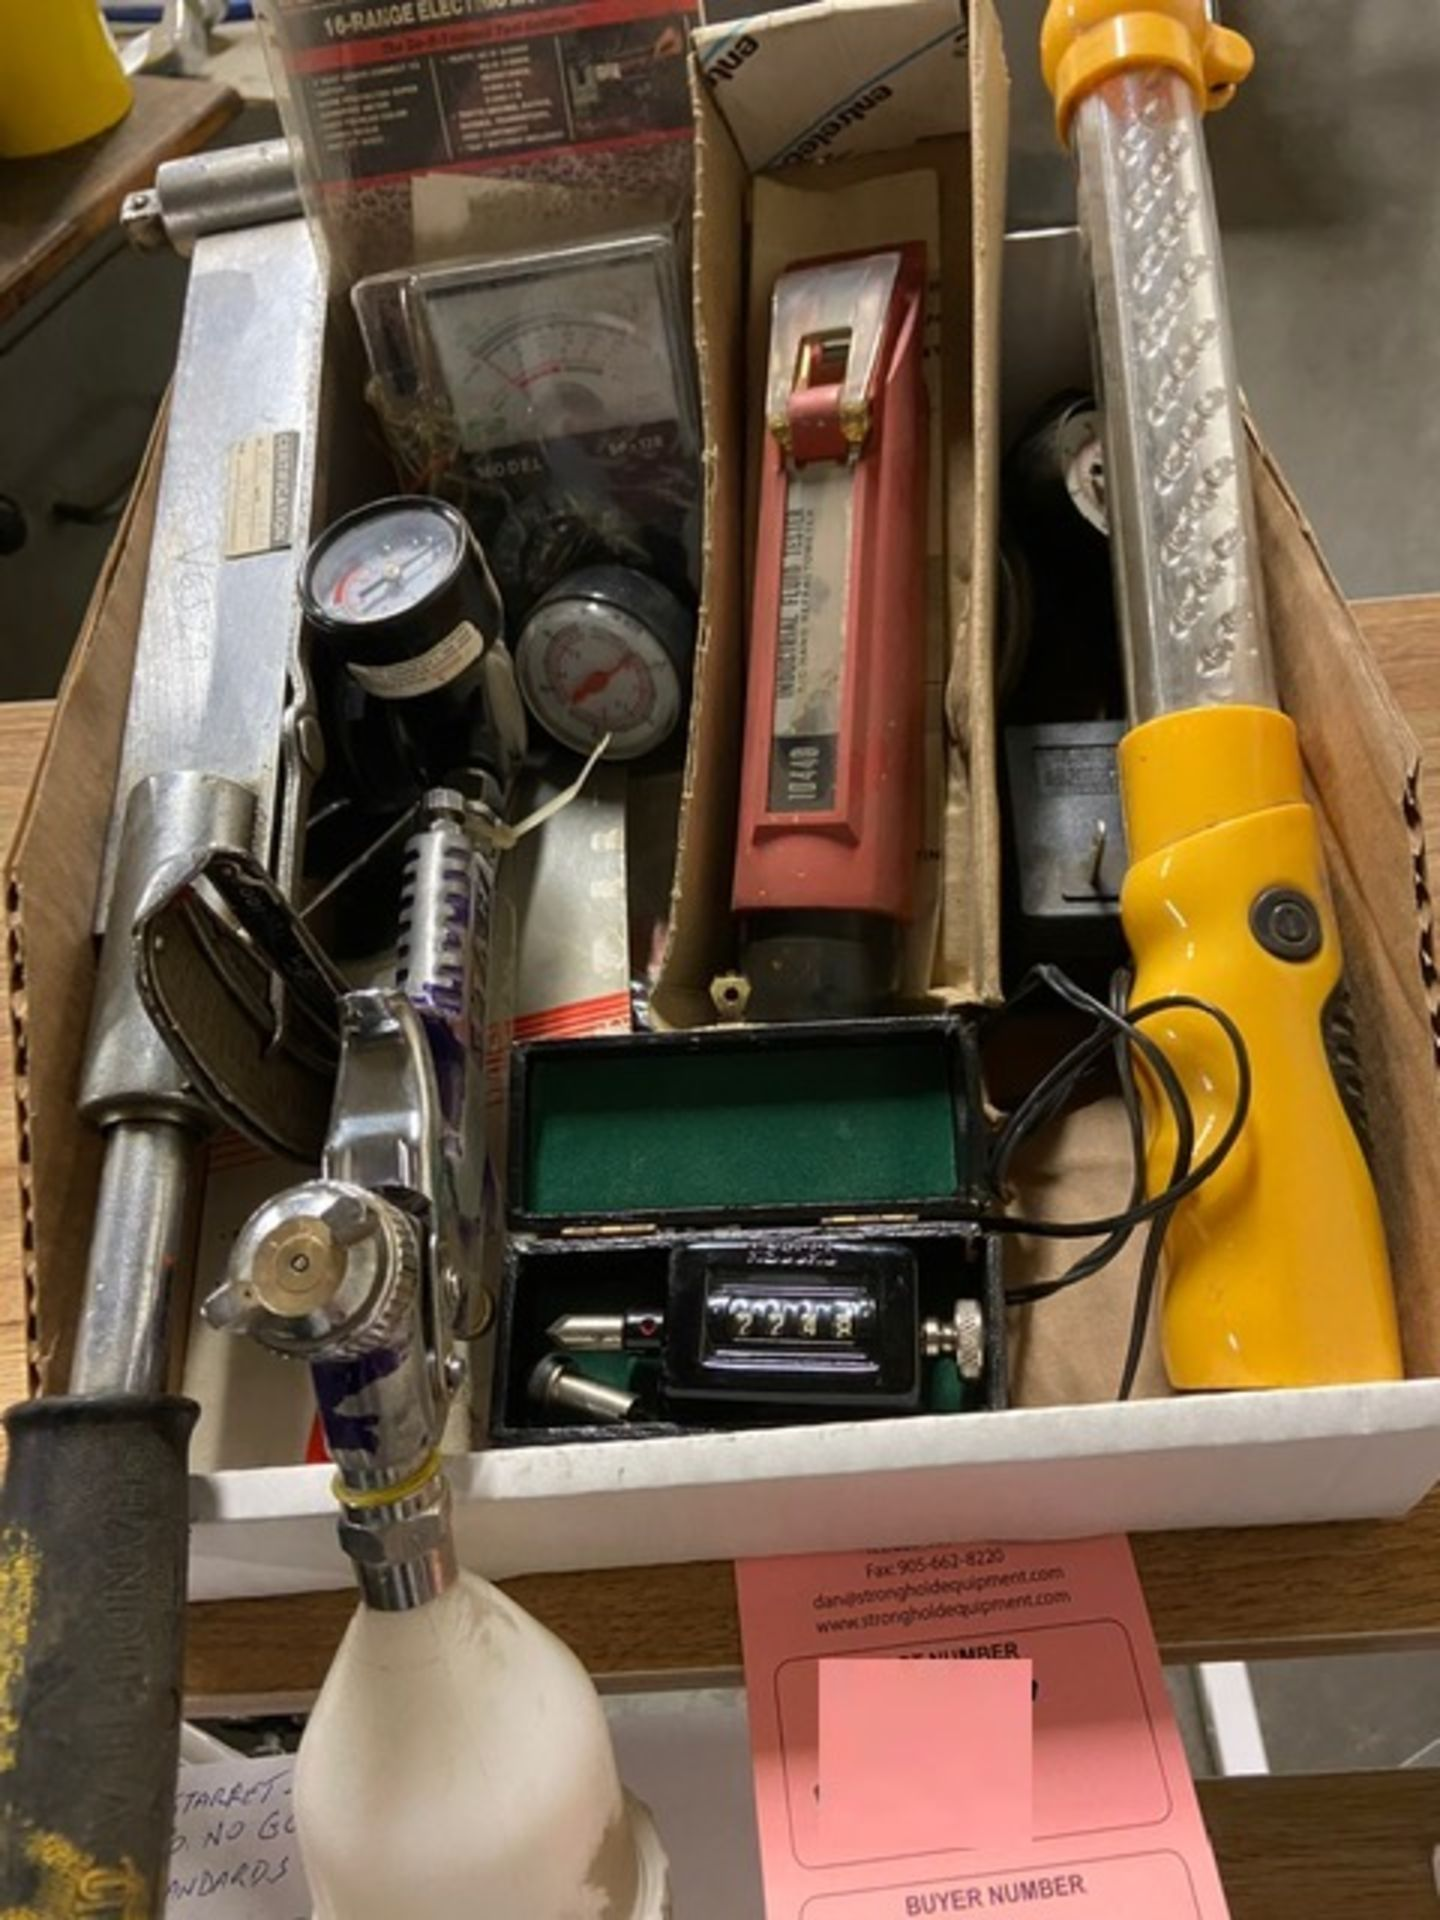 Lot of Testers including gauges, liquid test kit and light